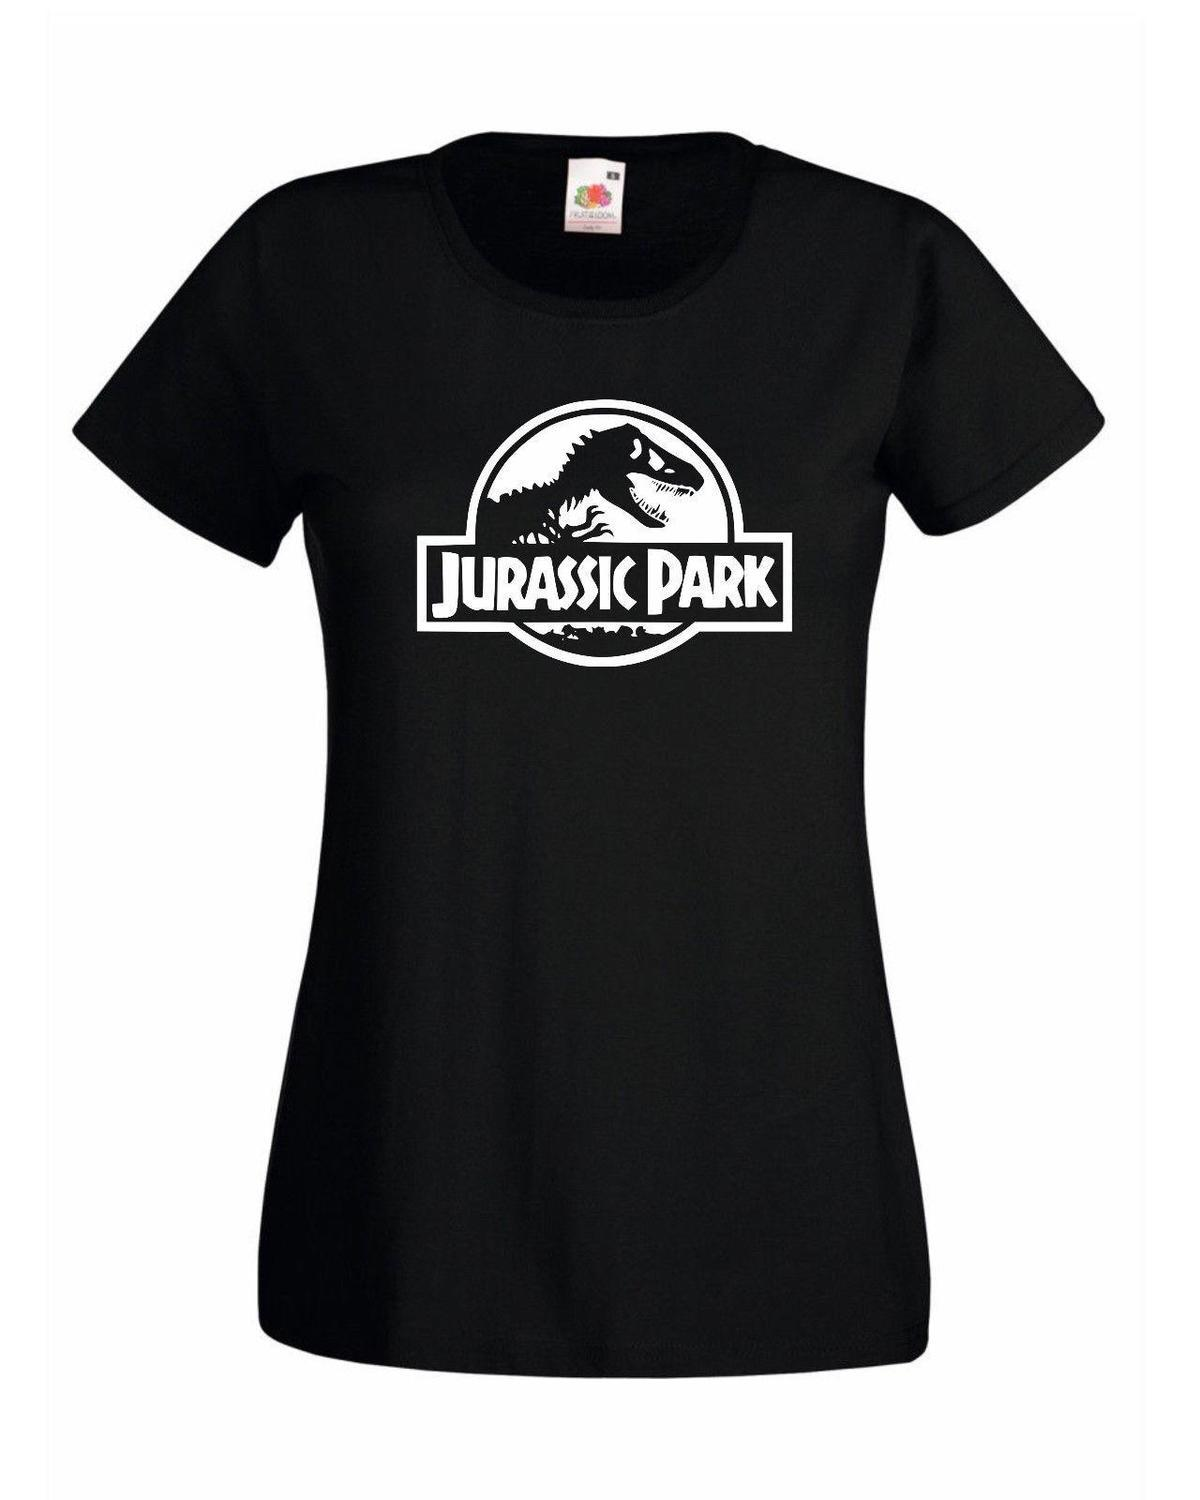 4e5f5700 Jurassic Park Female Fit T Shirt, Classic Movie All Sizes Free Delivery T  Shirt 24 Hours Buy Cool Shirts Online From Jc08, $12.7| DHgate.Com